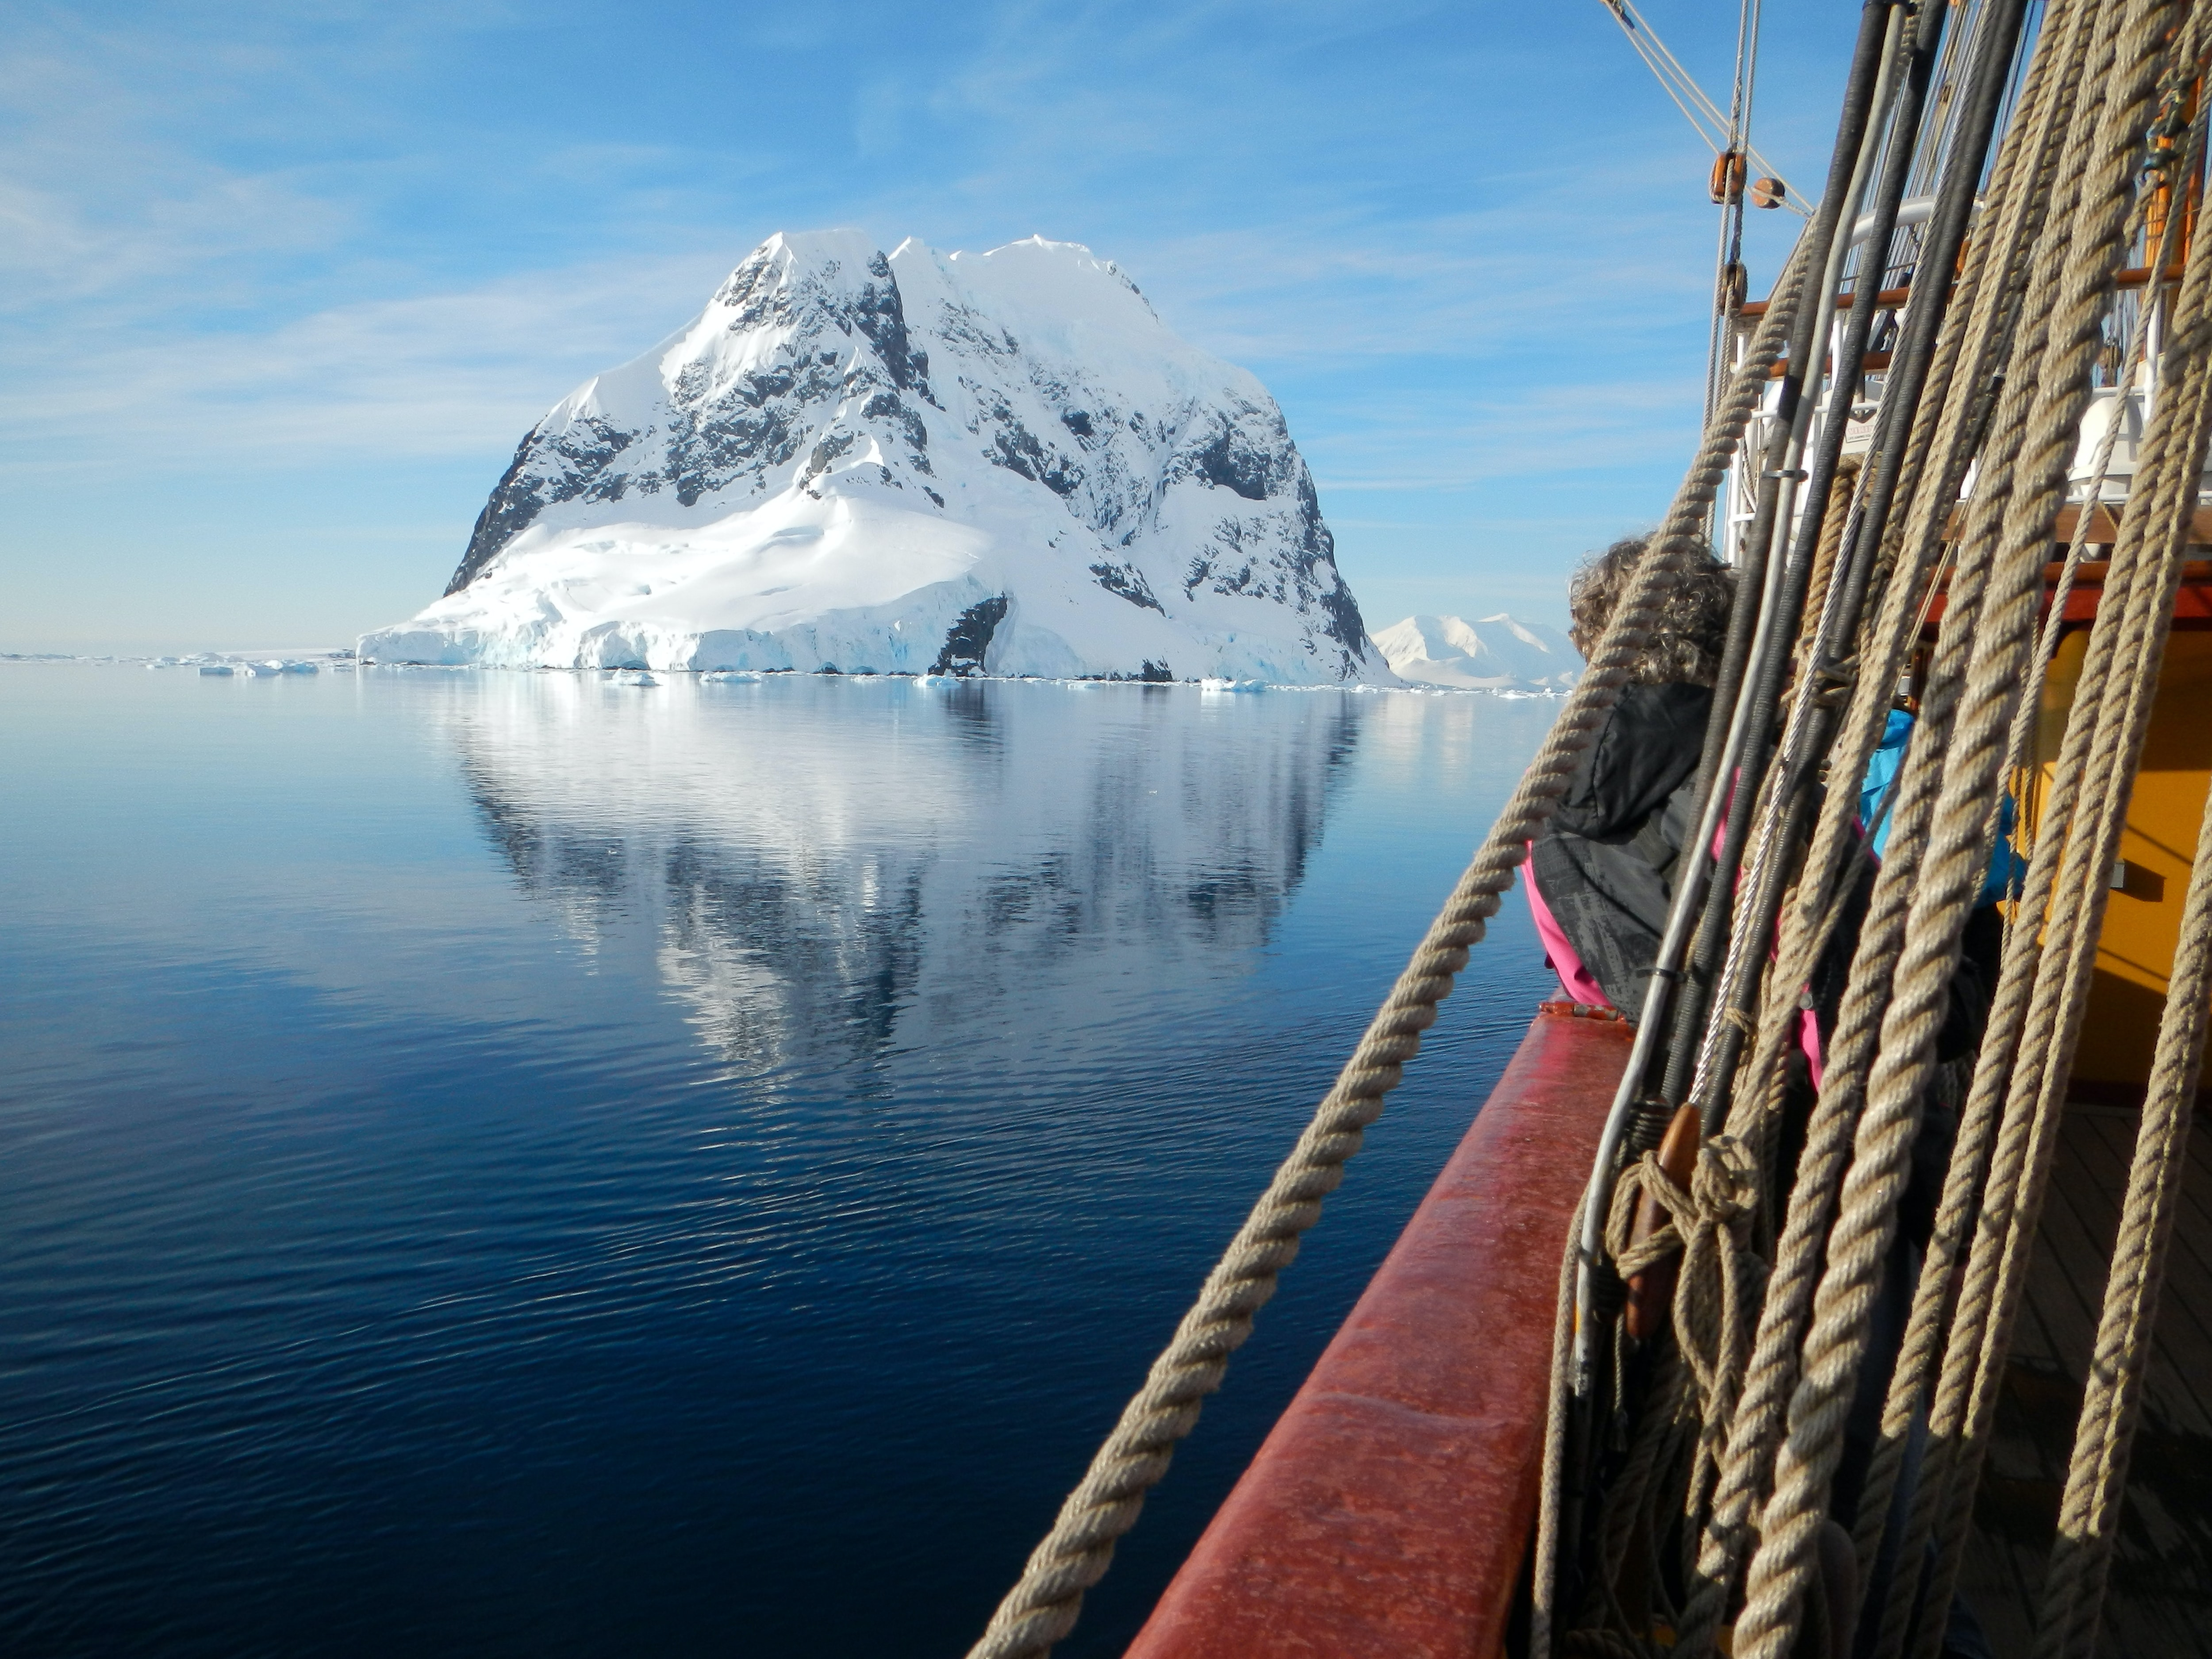 Antartica ship ice berg bucket list